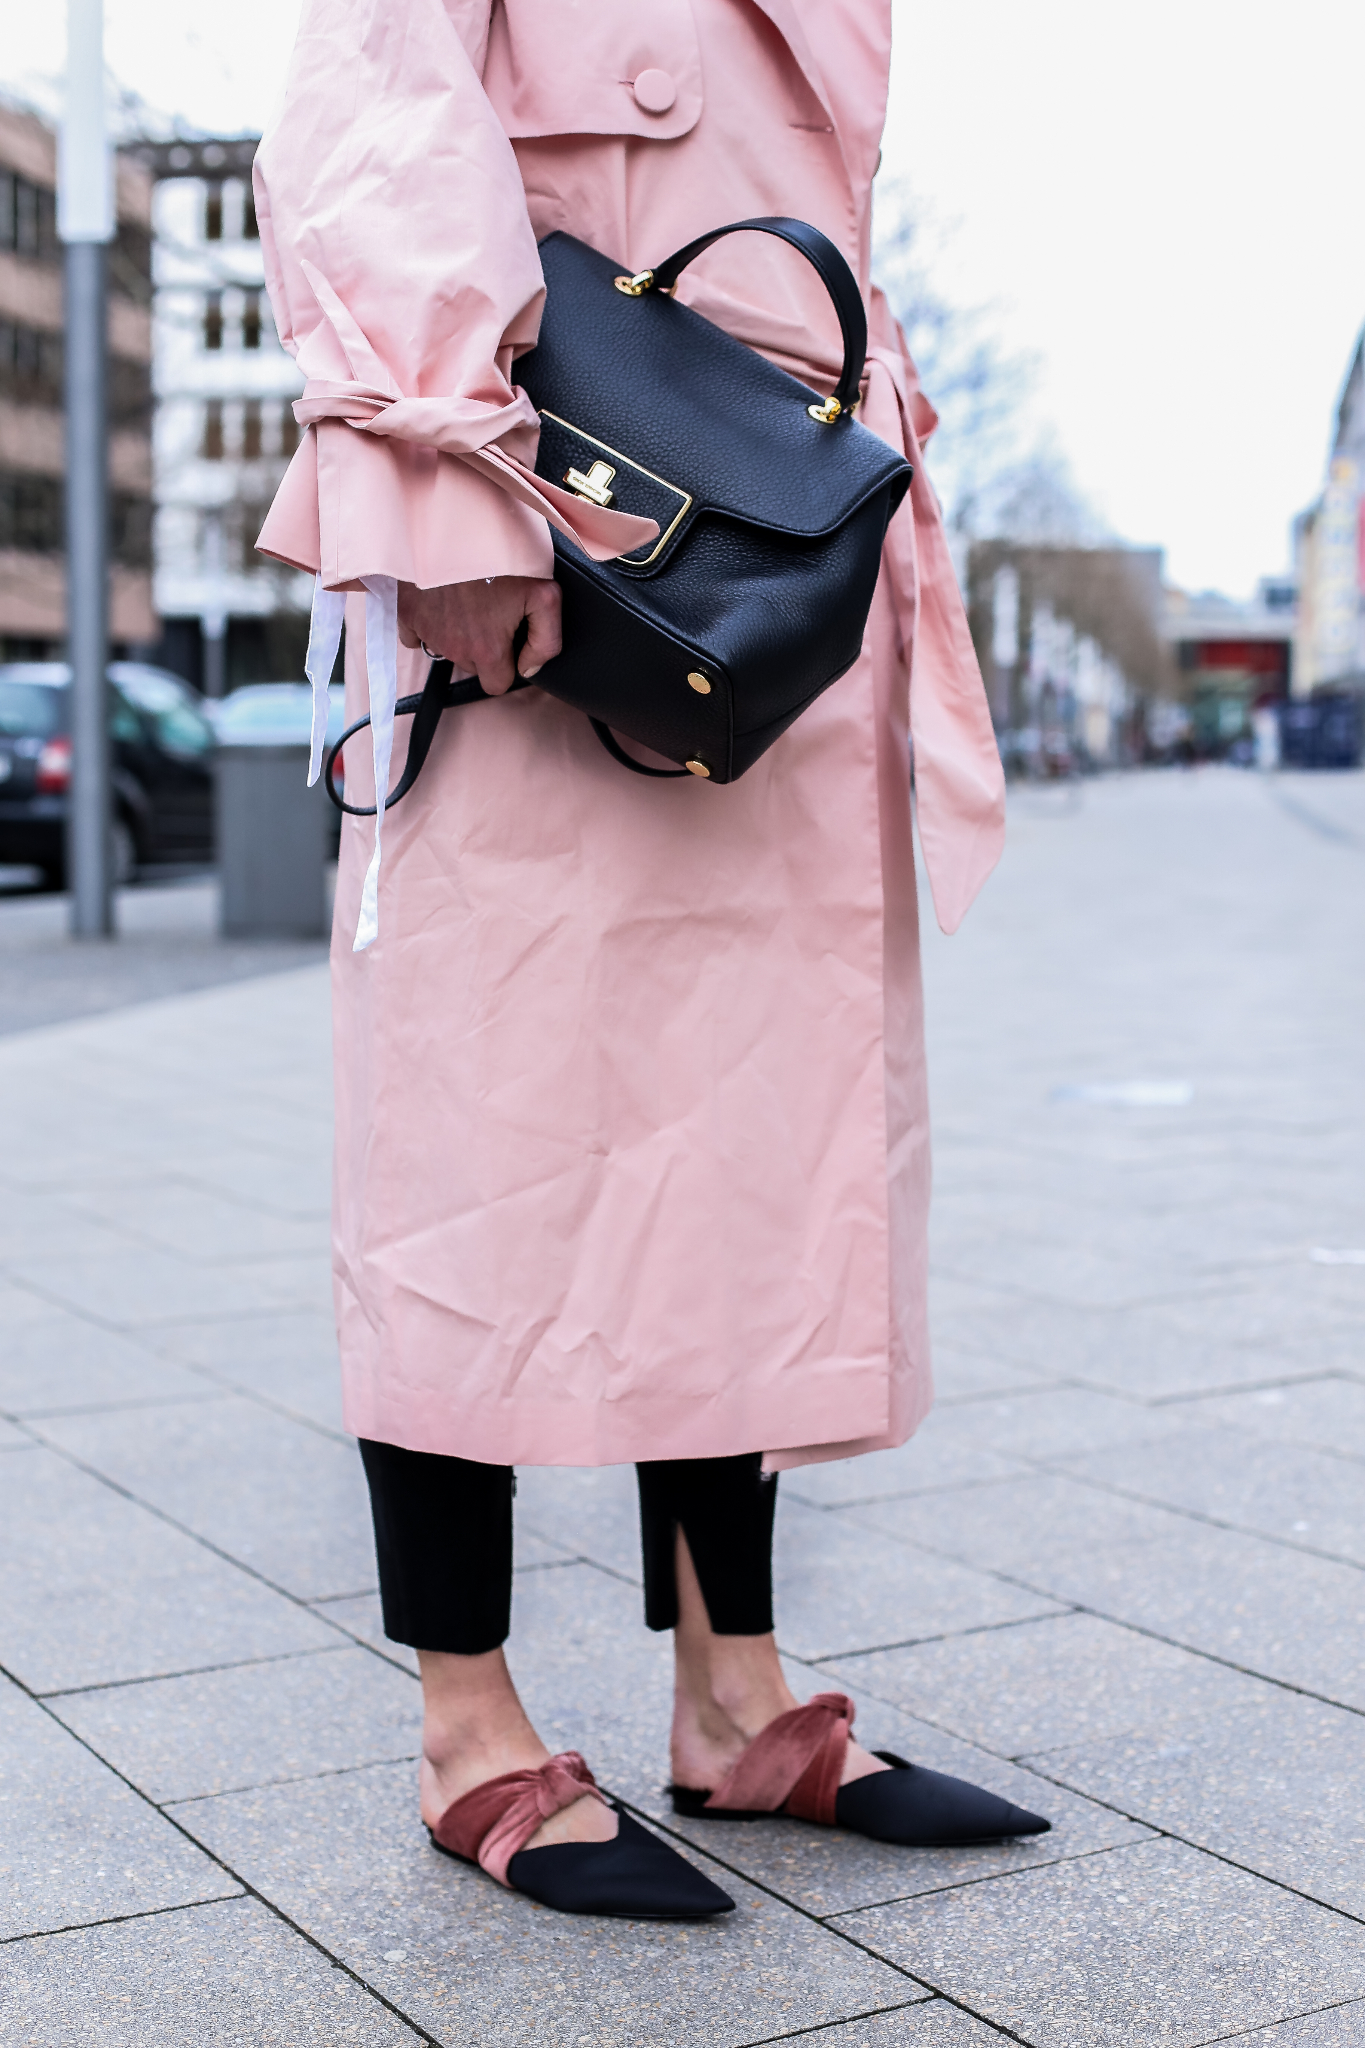 MOD-by-Monique-Fashion-Looks-Pink-and-bows-11